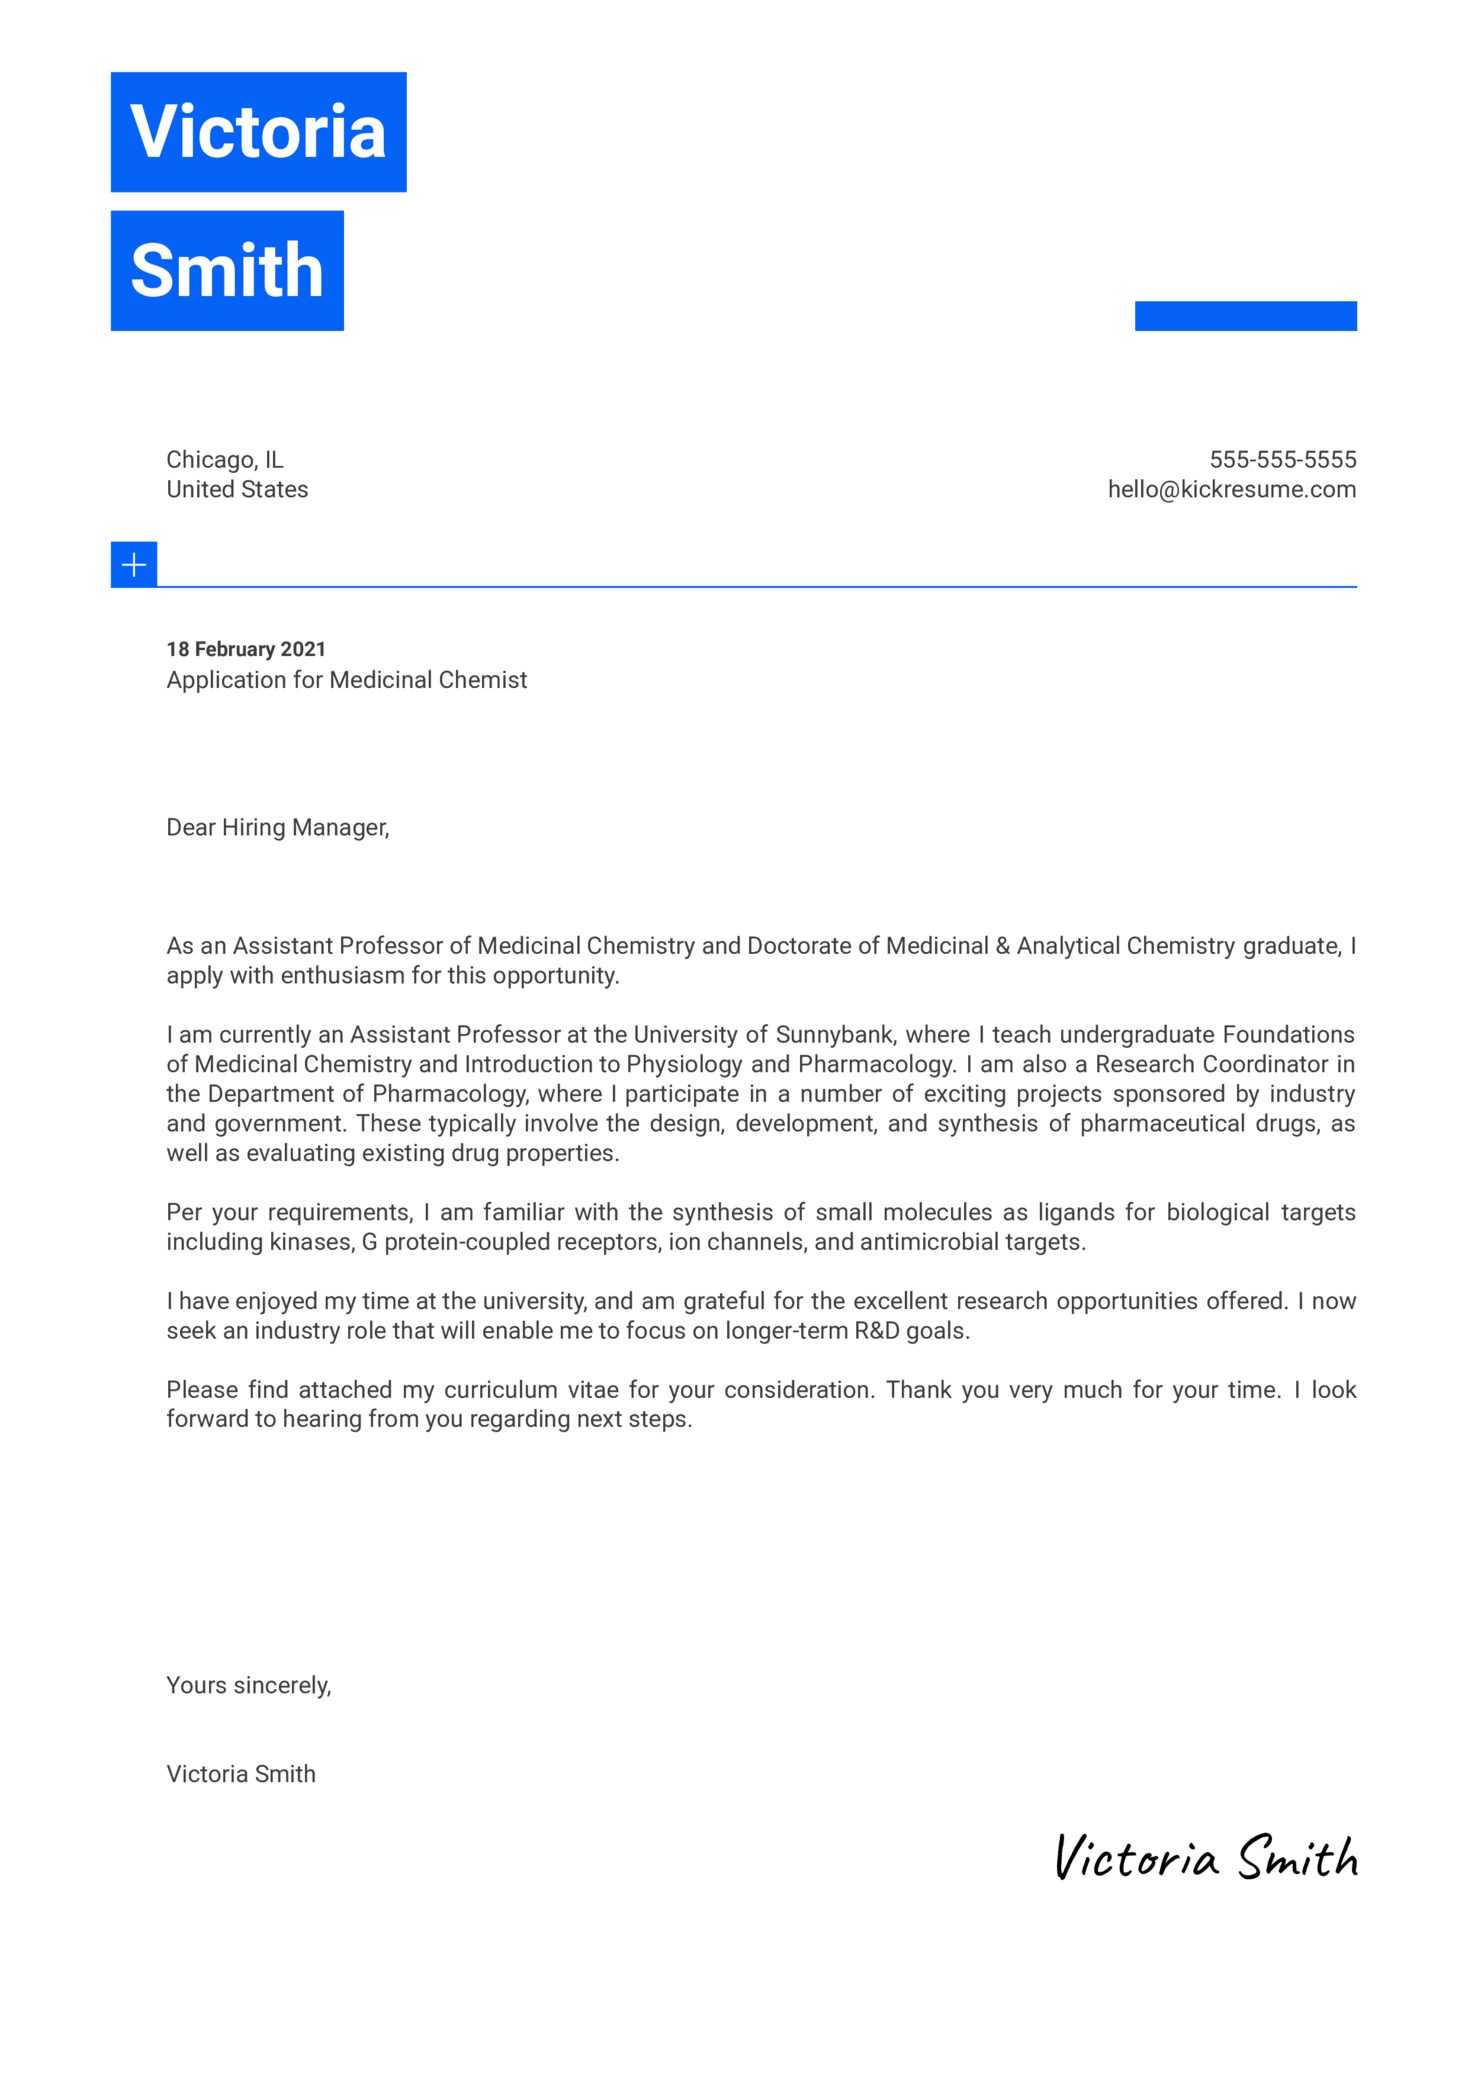 Medicinal Chemist Cover Letter Template